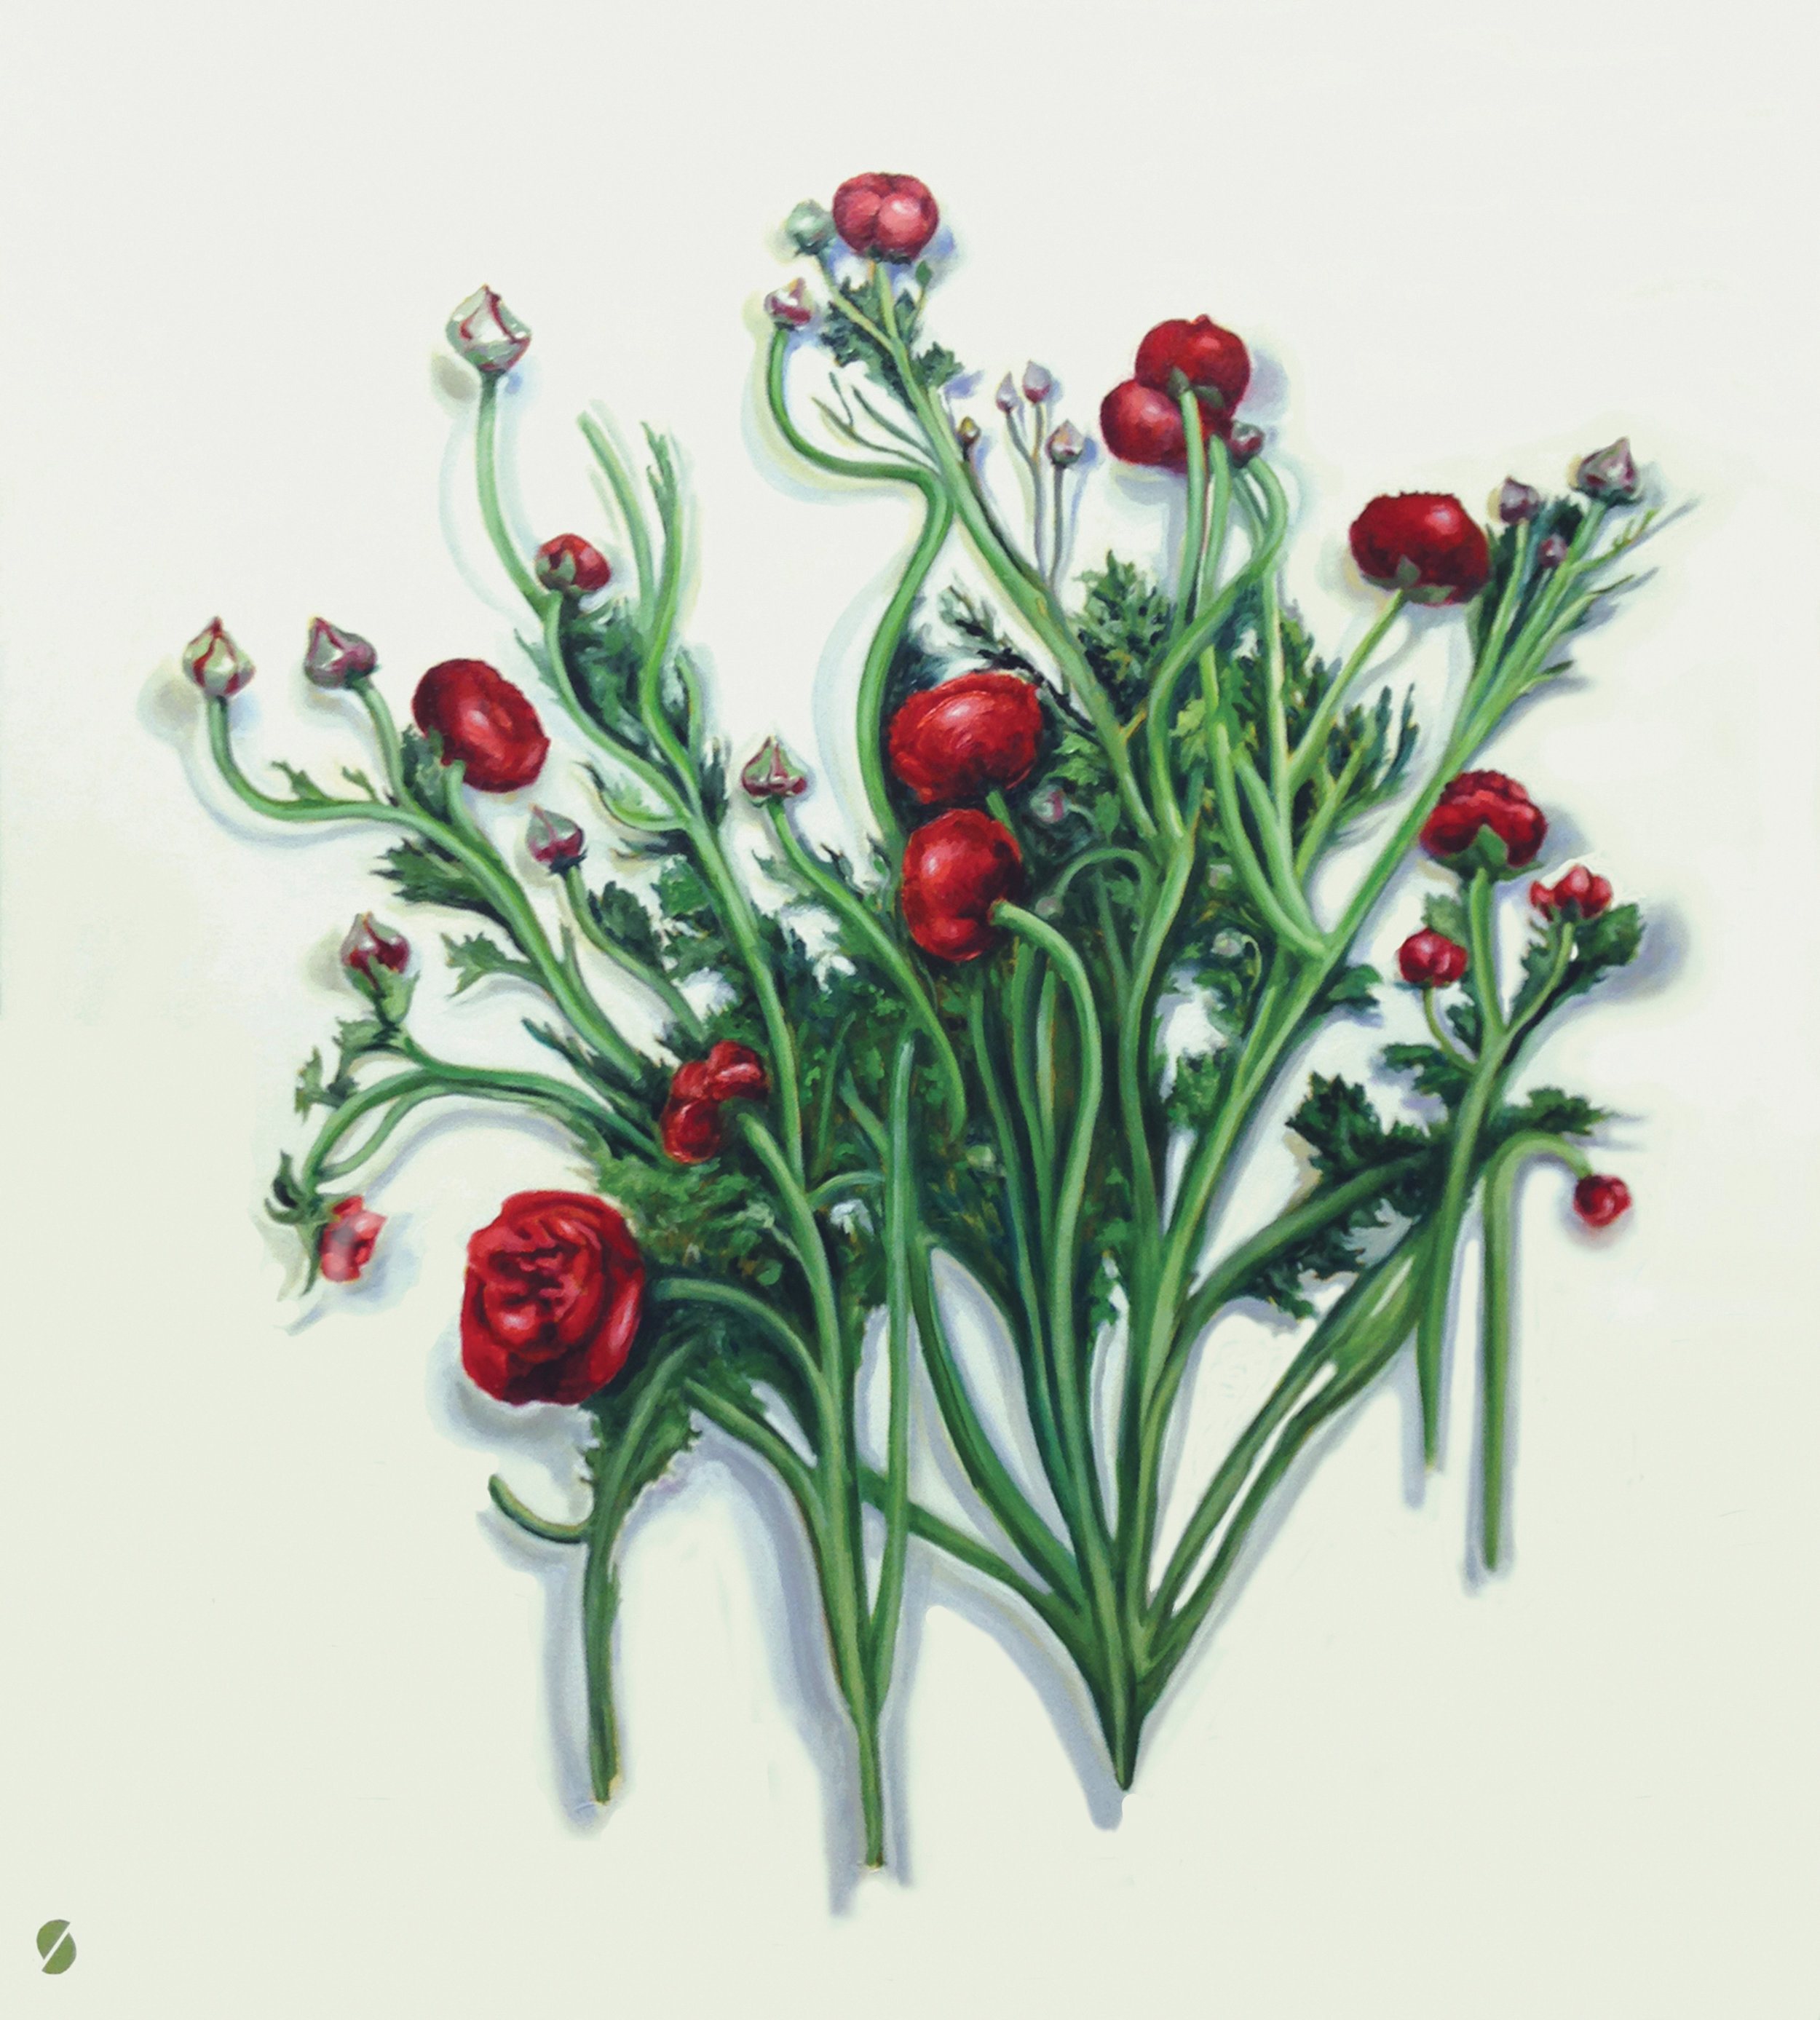 Medusa Ranunculus, 2014, oil on canvas, 44.25 x 40.25 inches. Private Collection